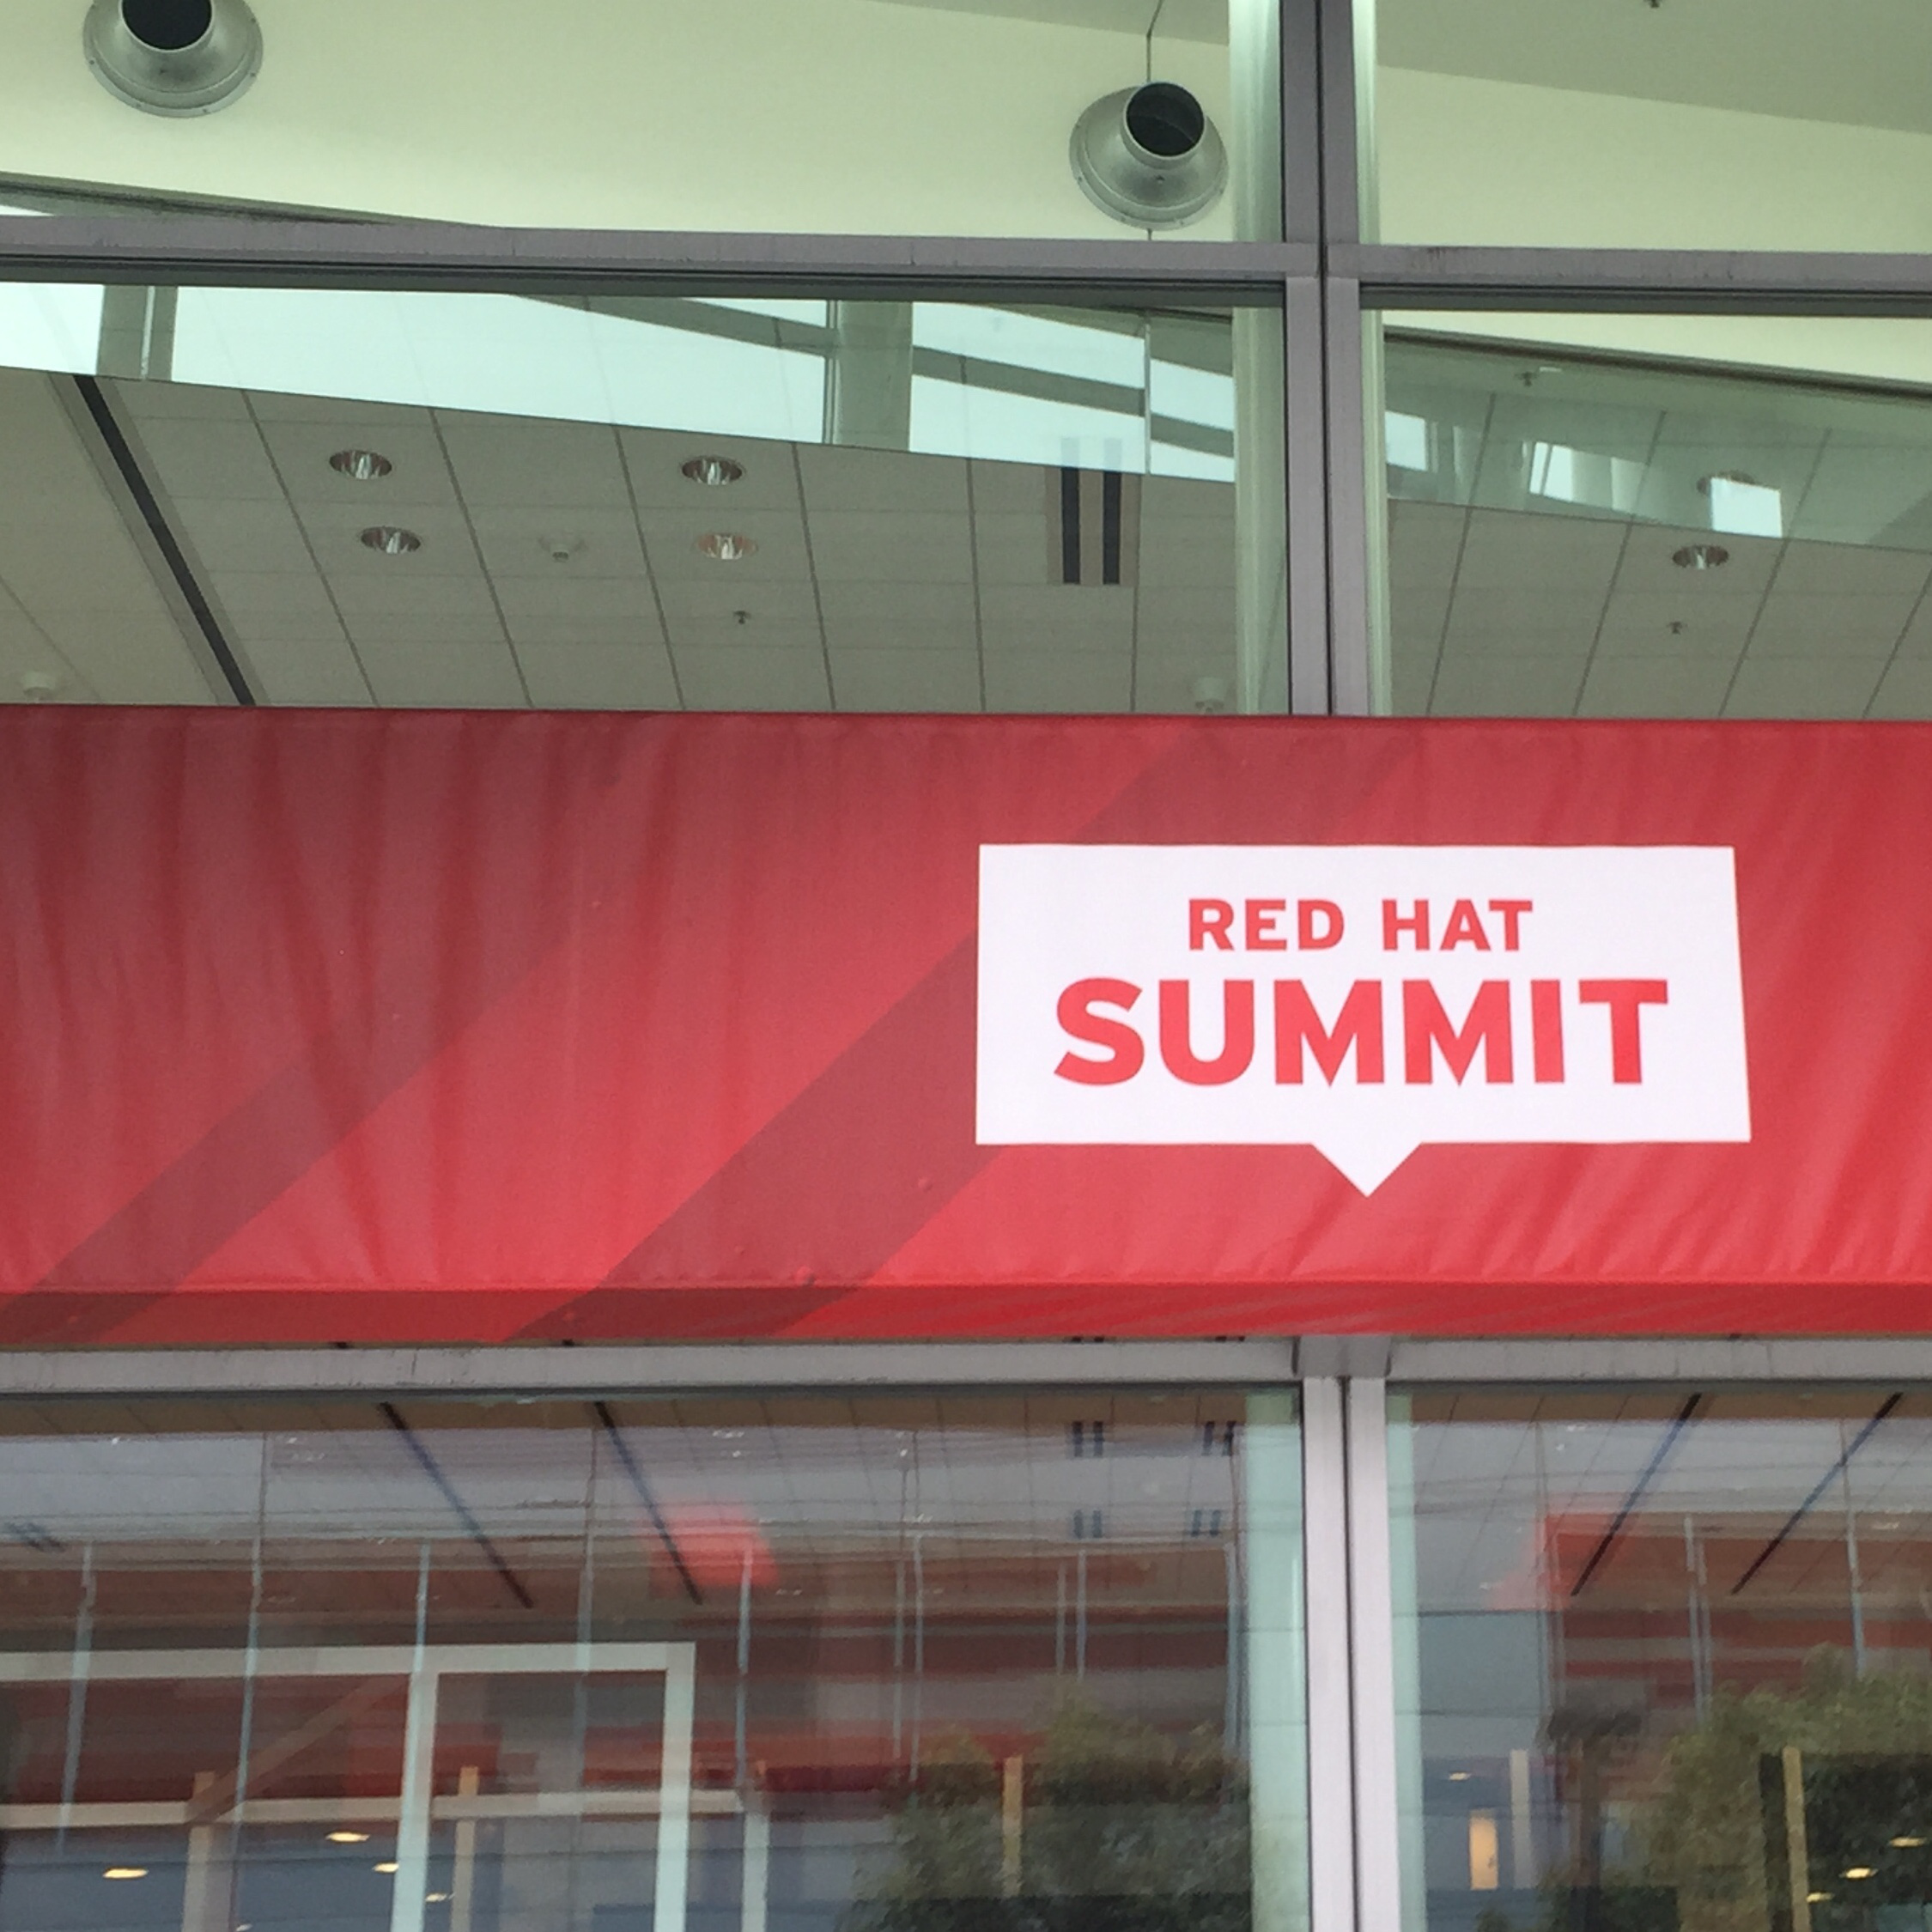 Signage for the Red Hat Summit at Moscone West in San Francisco